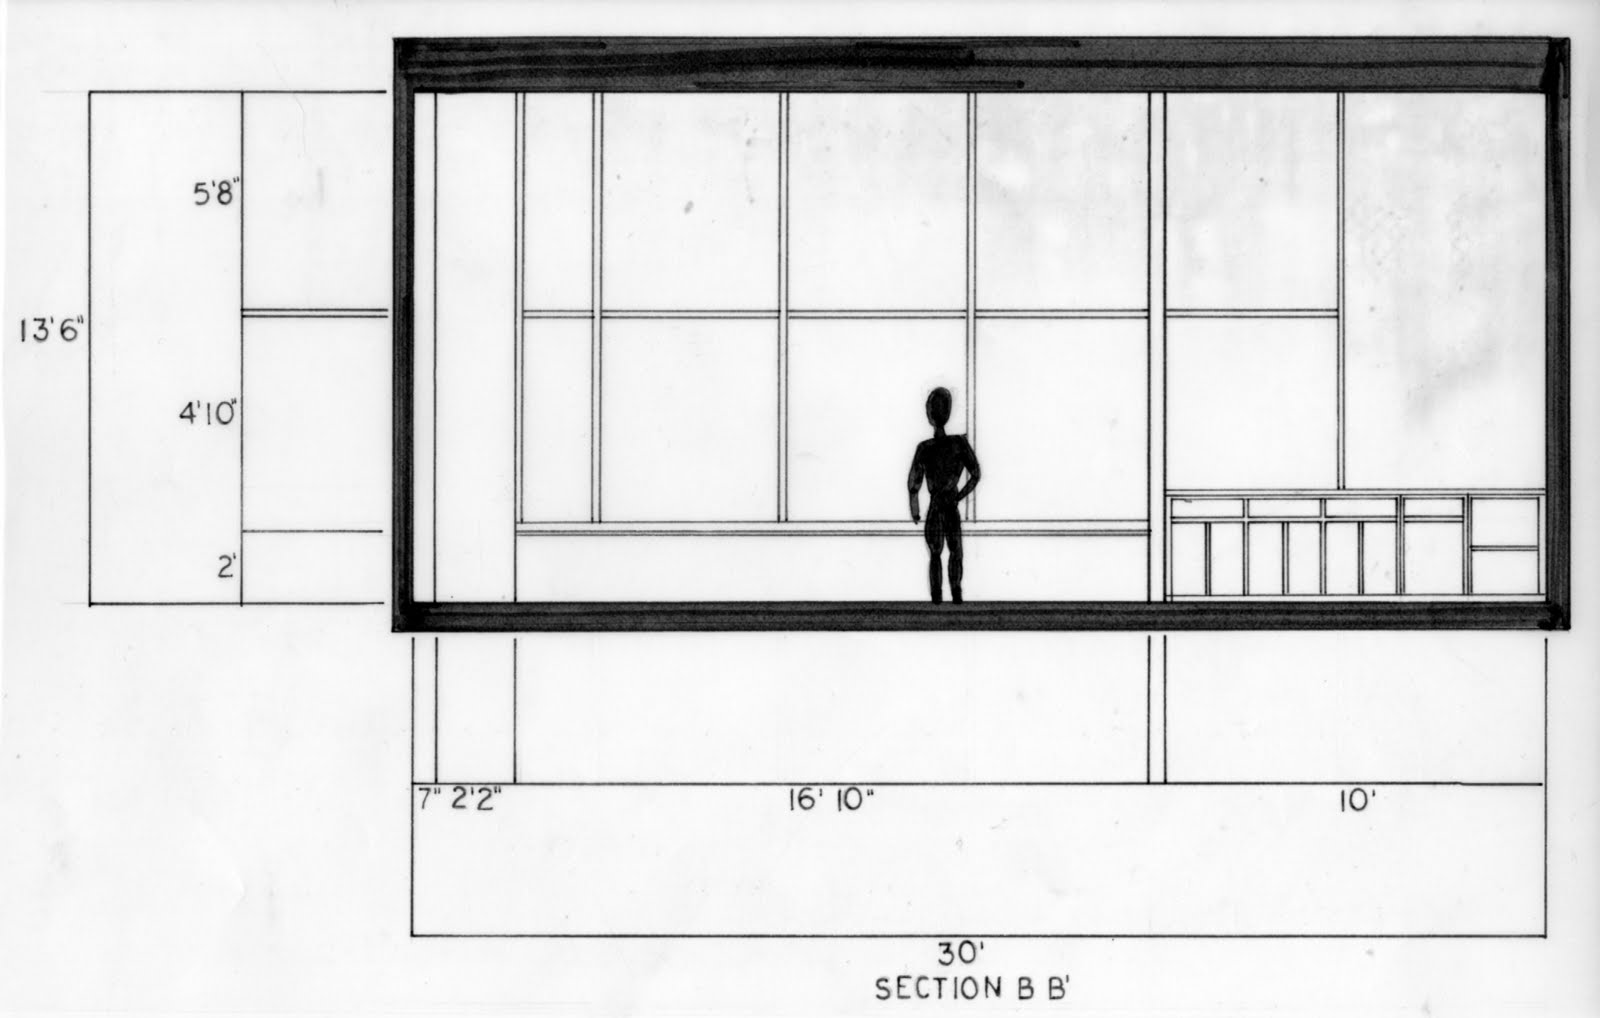 Plan Elevation Label : Cmb studio space final floor plan and section elevation